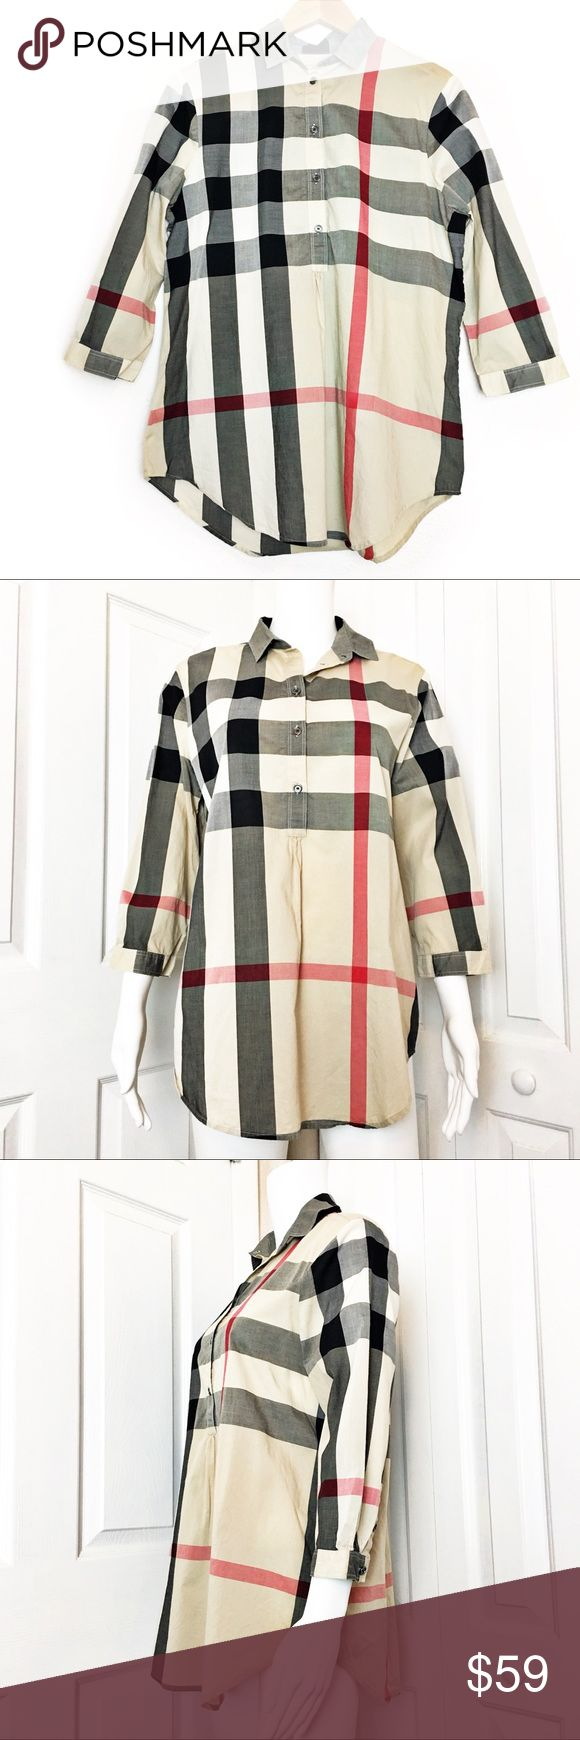 "Burberry Tunic Top Authentic Burberry Brit Top.  Personally purchased from the Burberry store at Tampa international mall.  Classic plaid print with half button up.  Has 3/4 sleeves.  I cut the care tag but i did always have Top dry cleaned.  Measurements laid flat: ▪️pit to pit:  20"" ▪️length from top of shoulder to hem in from 28"" and back 30"" ▪️condition:  pre-owned excellent condition *Measurements are approximate. Burberry Tops Tunics"